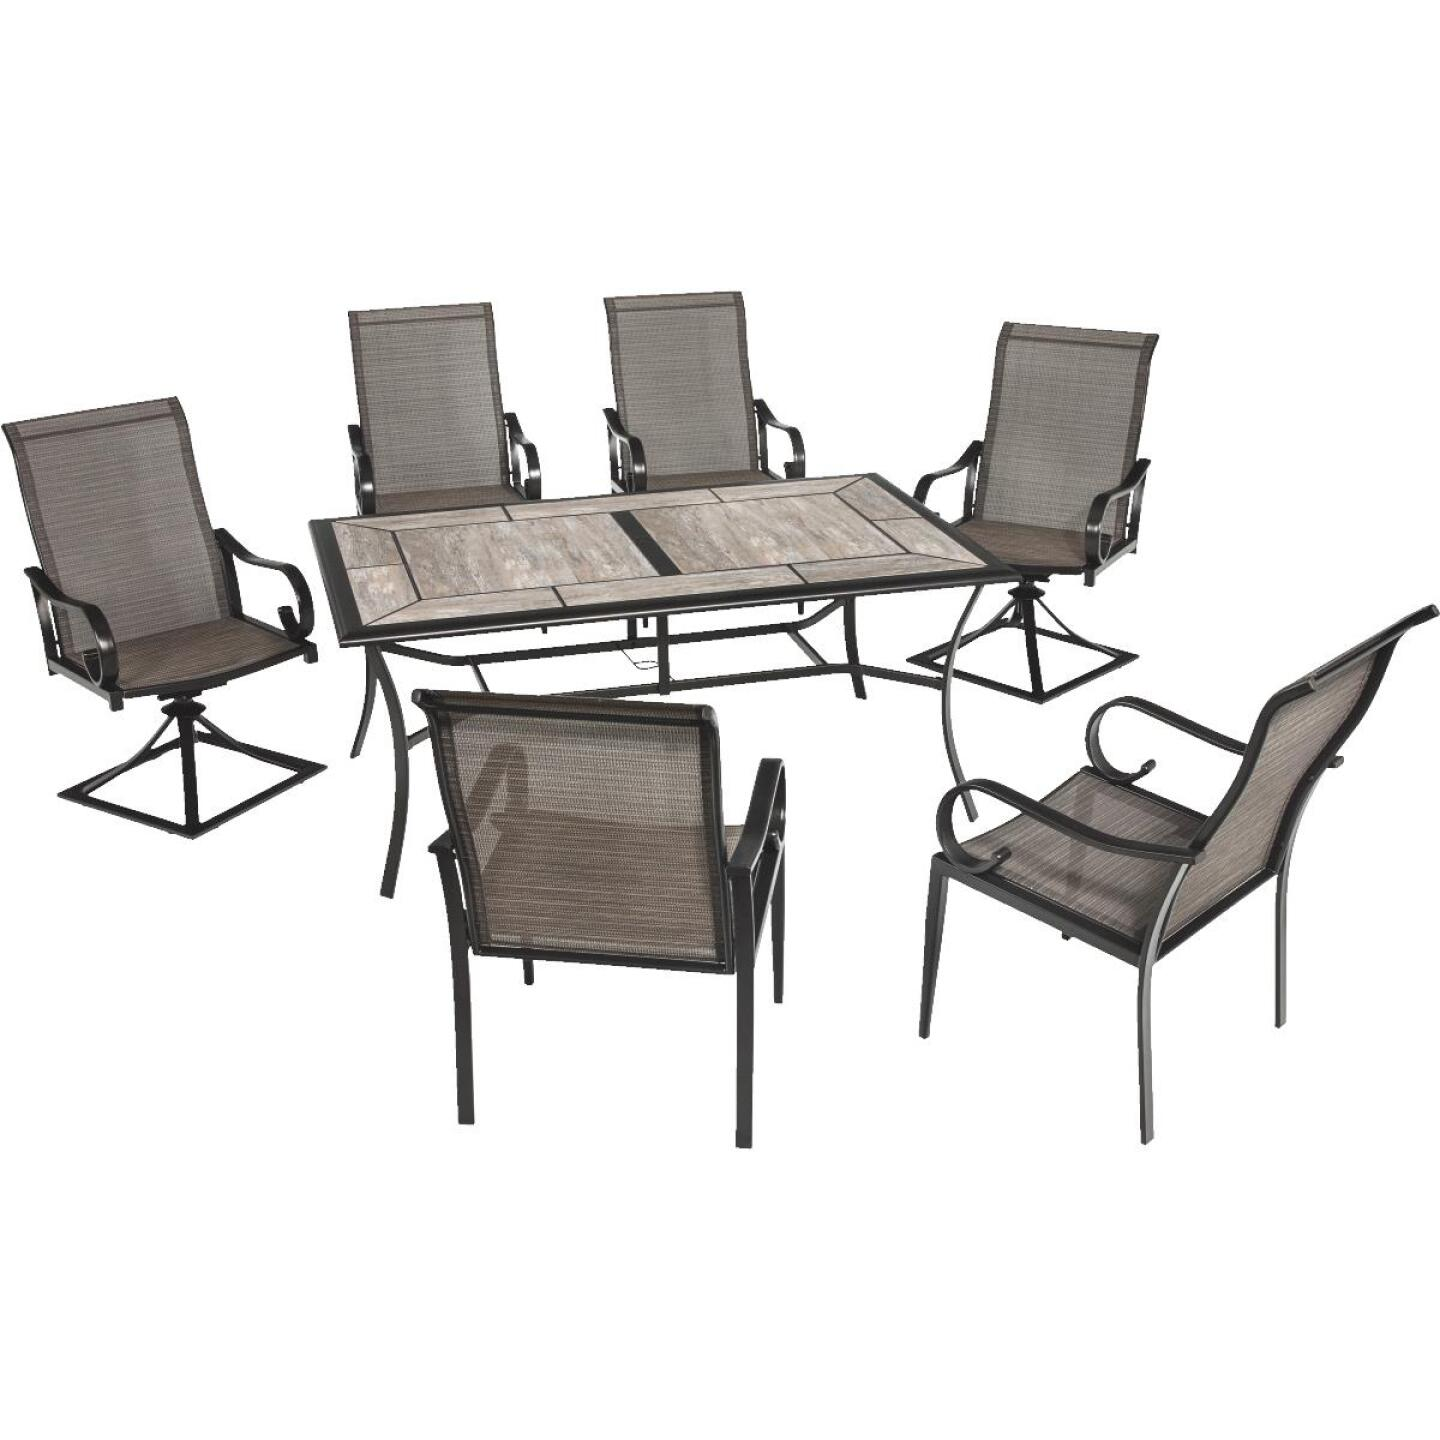 Outdoor Expressions Berkshire 7-Piece Dining Set Image 220